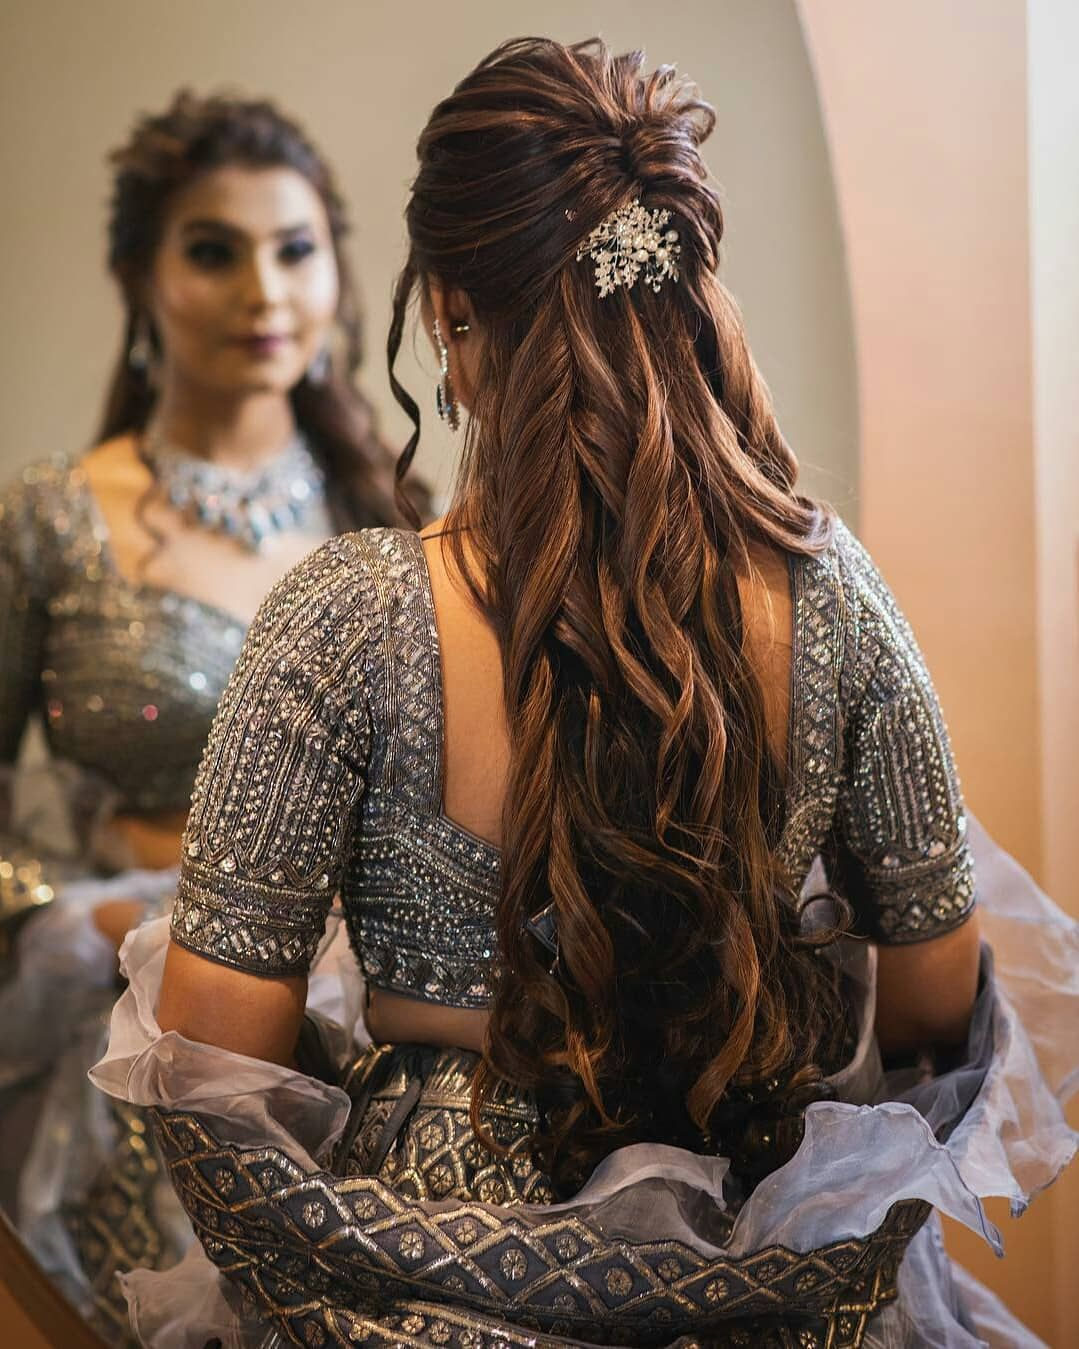 Searching For An Elegant Fuss Free Wedding Hairstyle Try One Of These Pretty Hair Dos Fit For Every Kind Of Hair Styles Engagement Hairstyles Open Hairstyles